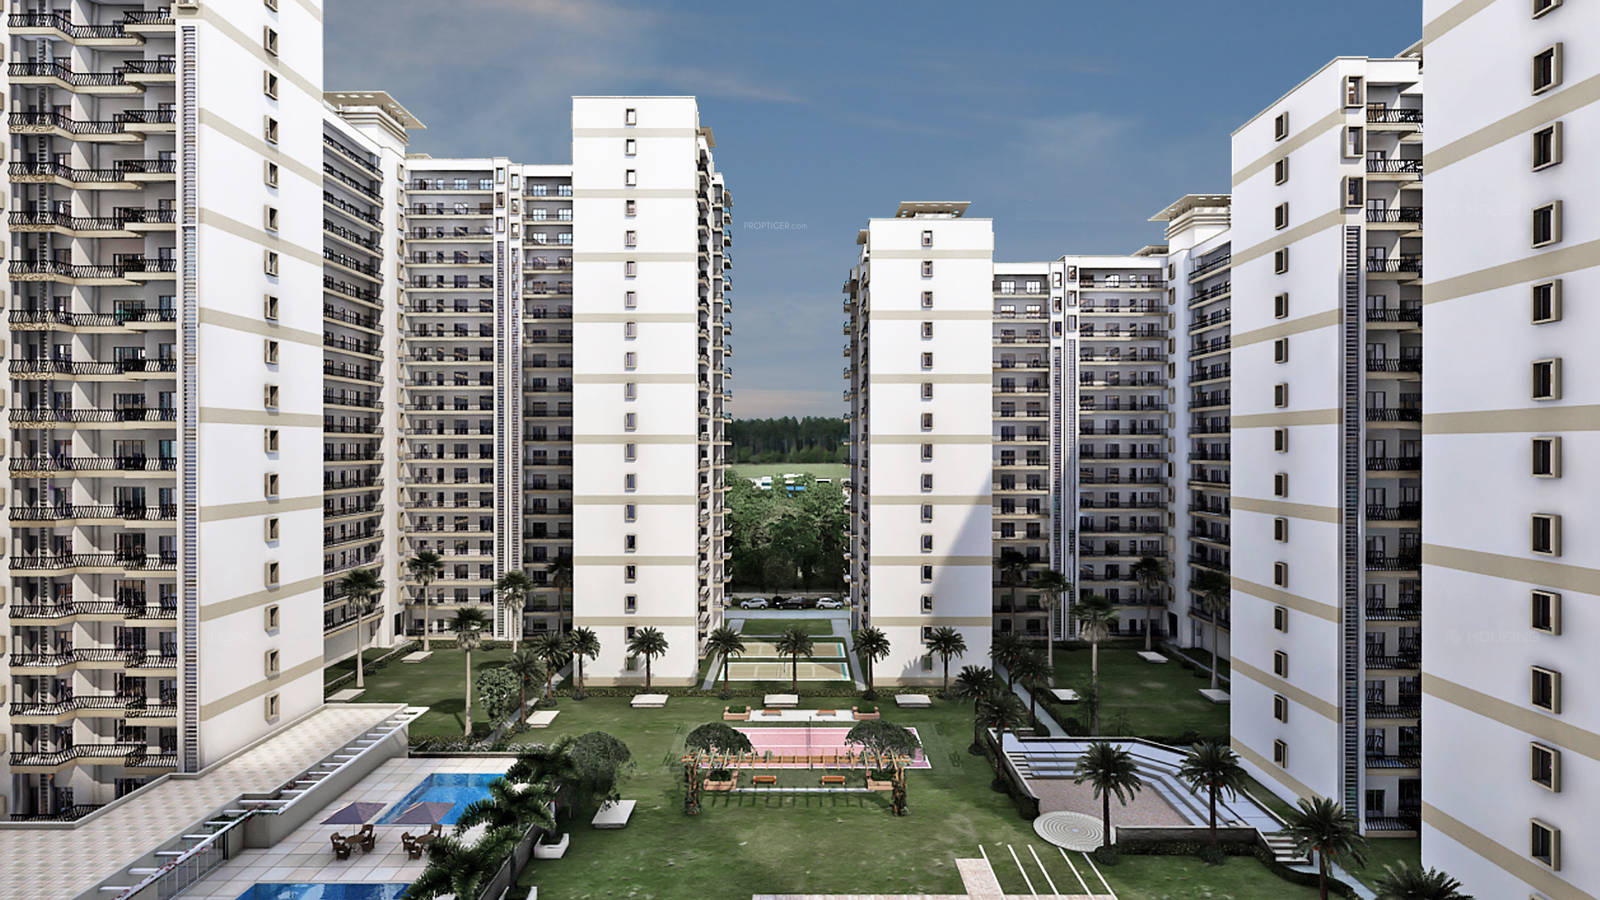 the antriksh group kanball g in sector noida price the antriksh group kanball 3g in sector 77 noida price location map floor plan reviews com